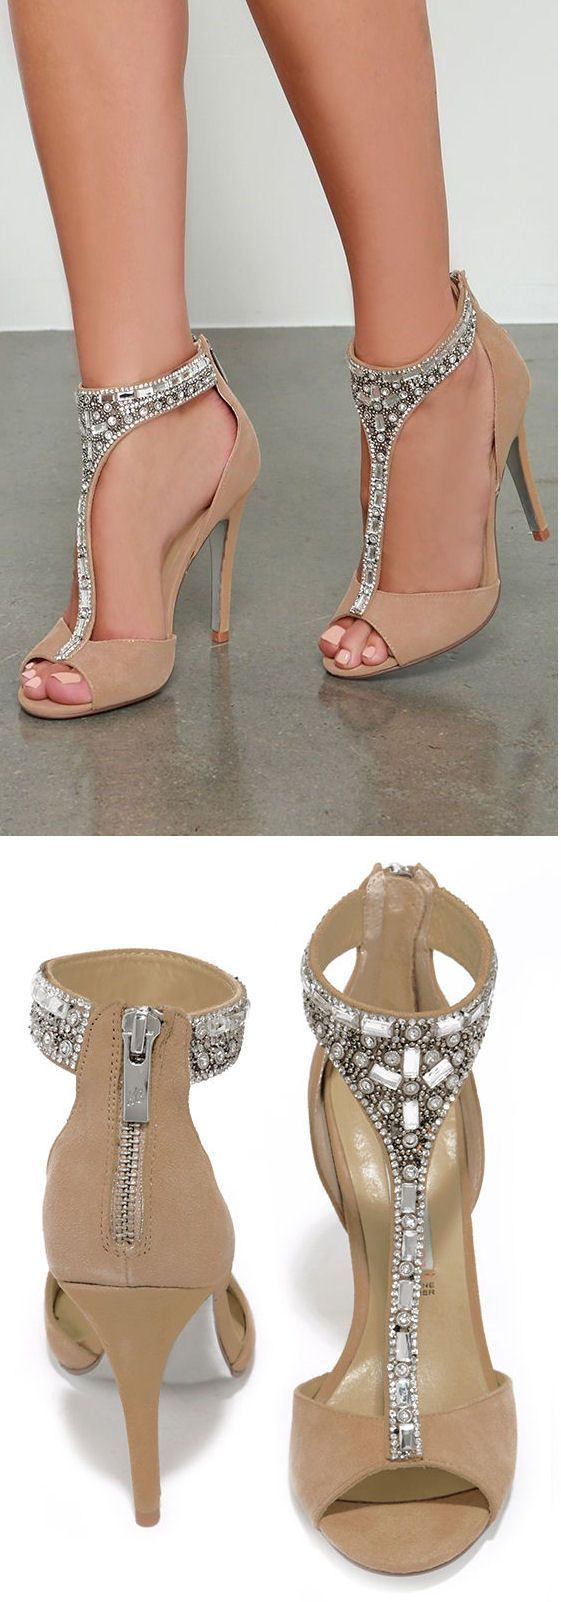 40 Heels Shoes For Women Which Are Really Classy - Page 4 of 4 - Trend To Wear